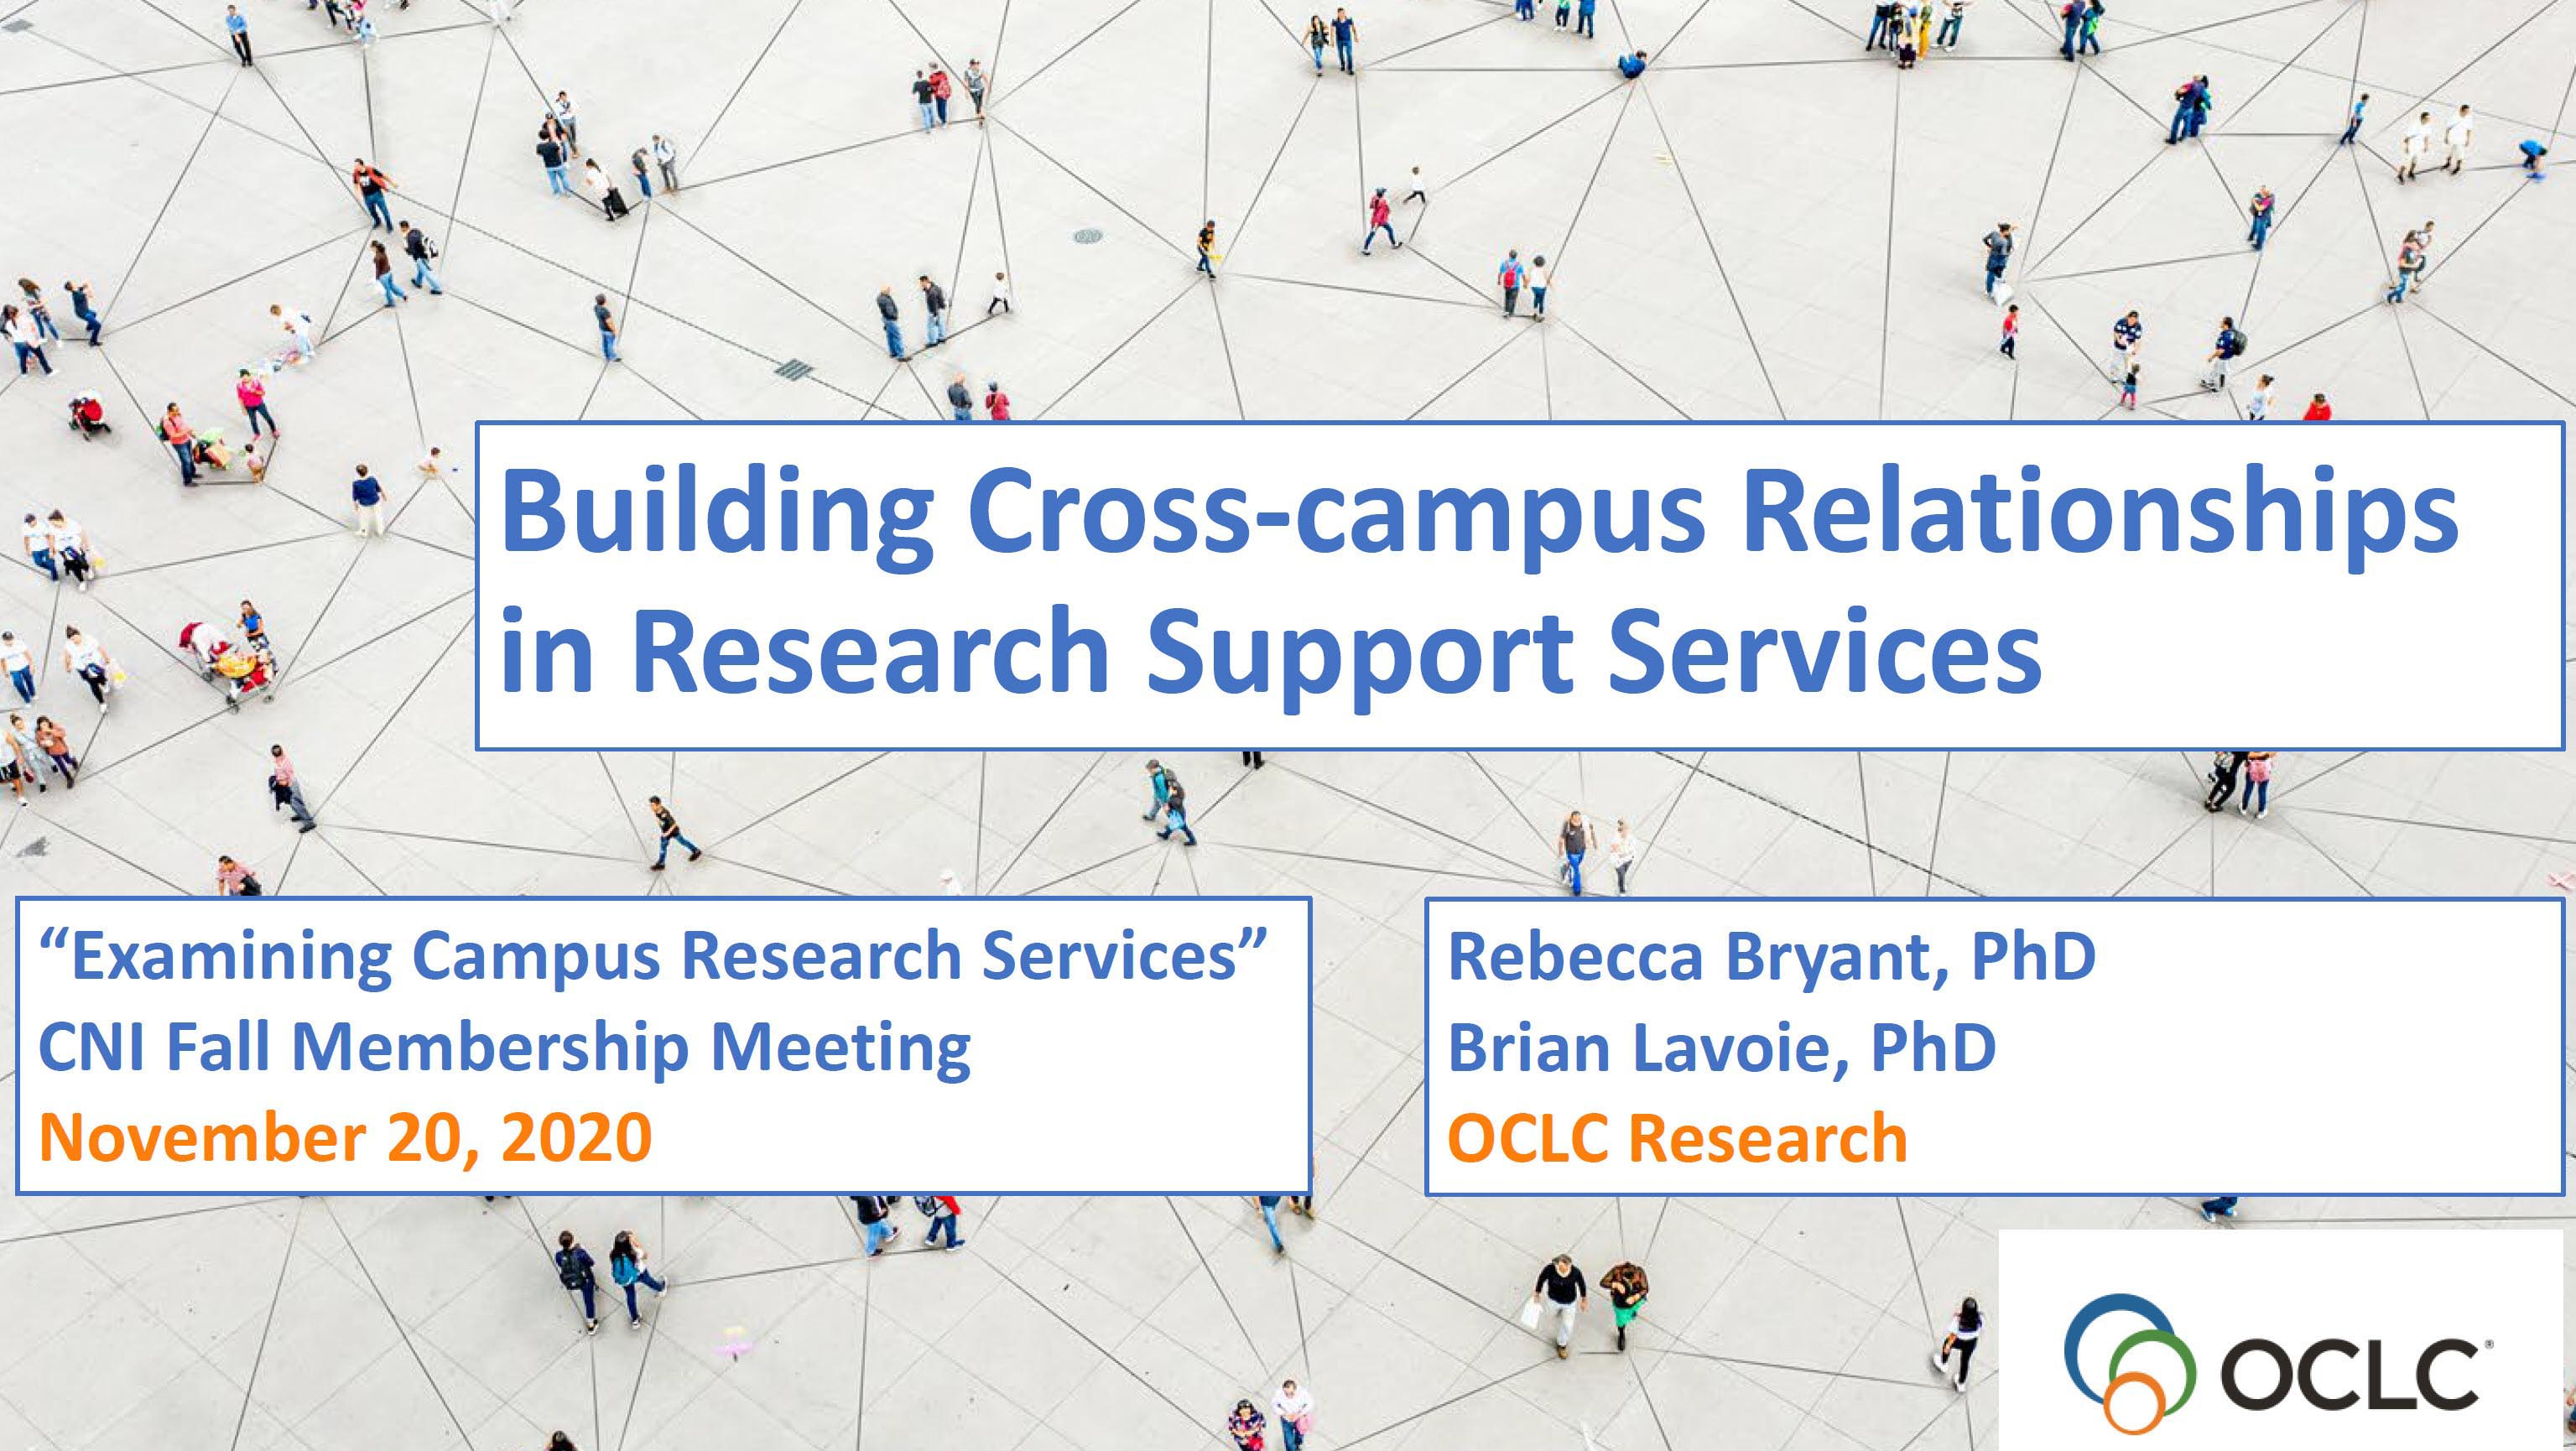 Building Cross-campus Relationships